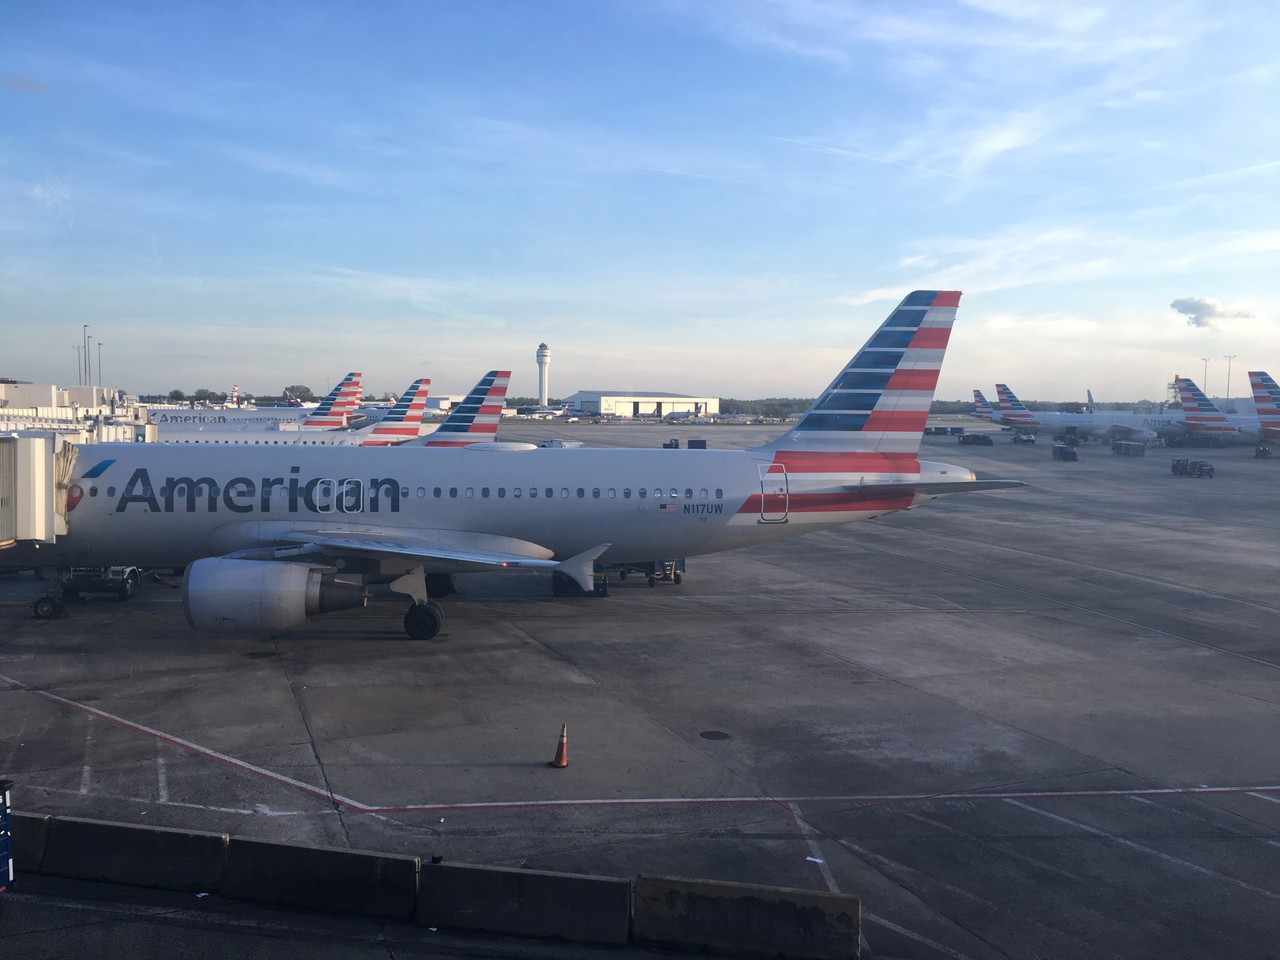 Review of American Airlines flight from Charlotte to Orlando